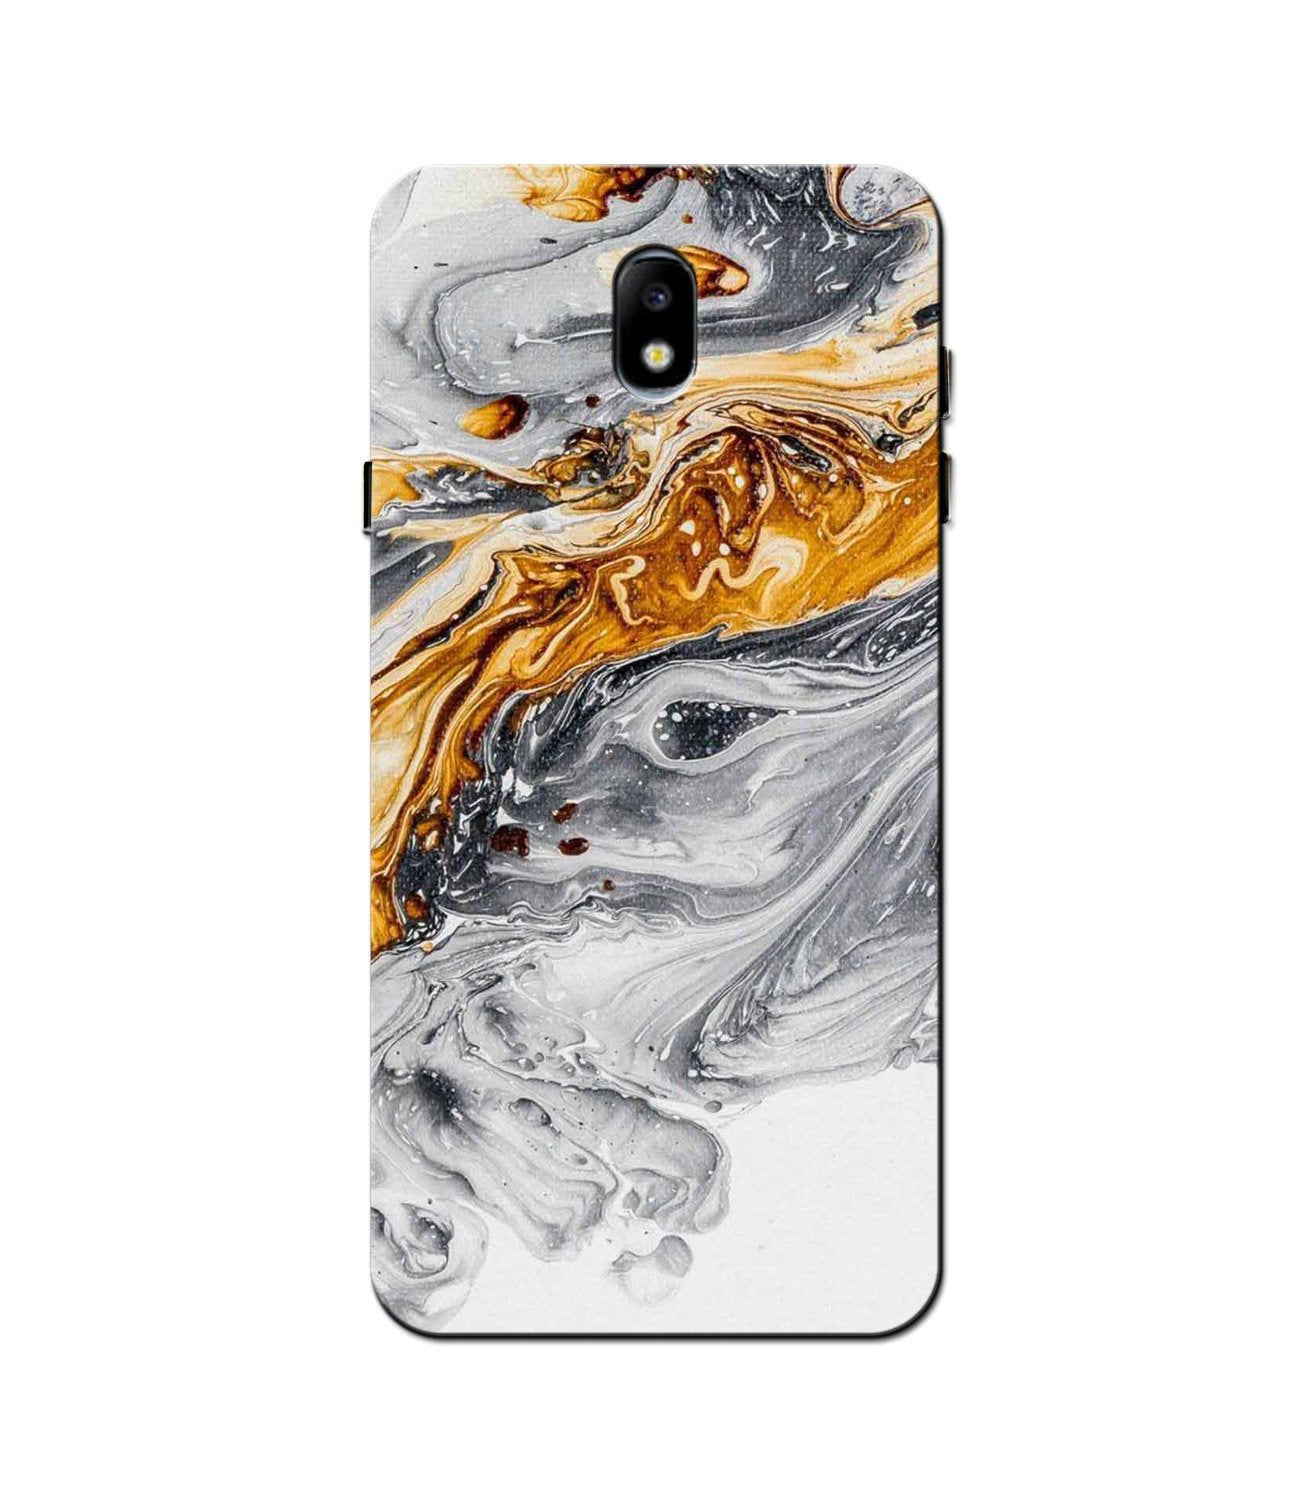 Marble Texture Mobile Back Case for Galaxy J5 Pro  (Design - 310)